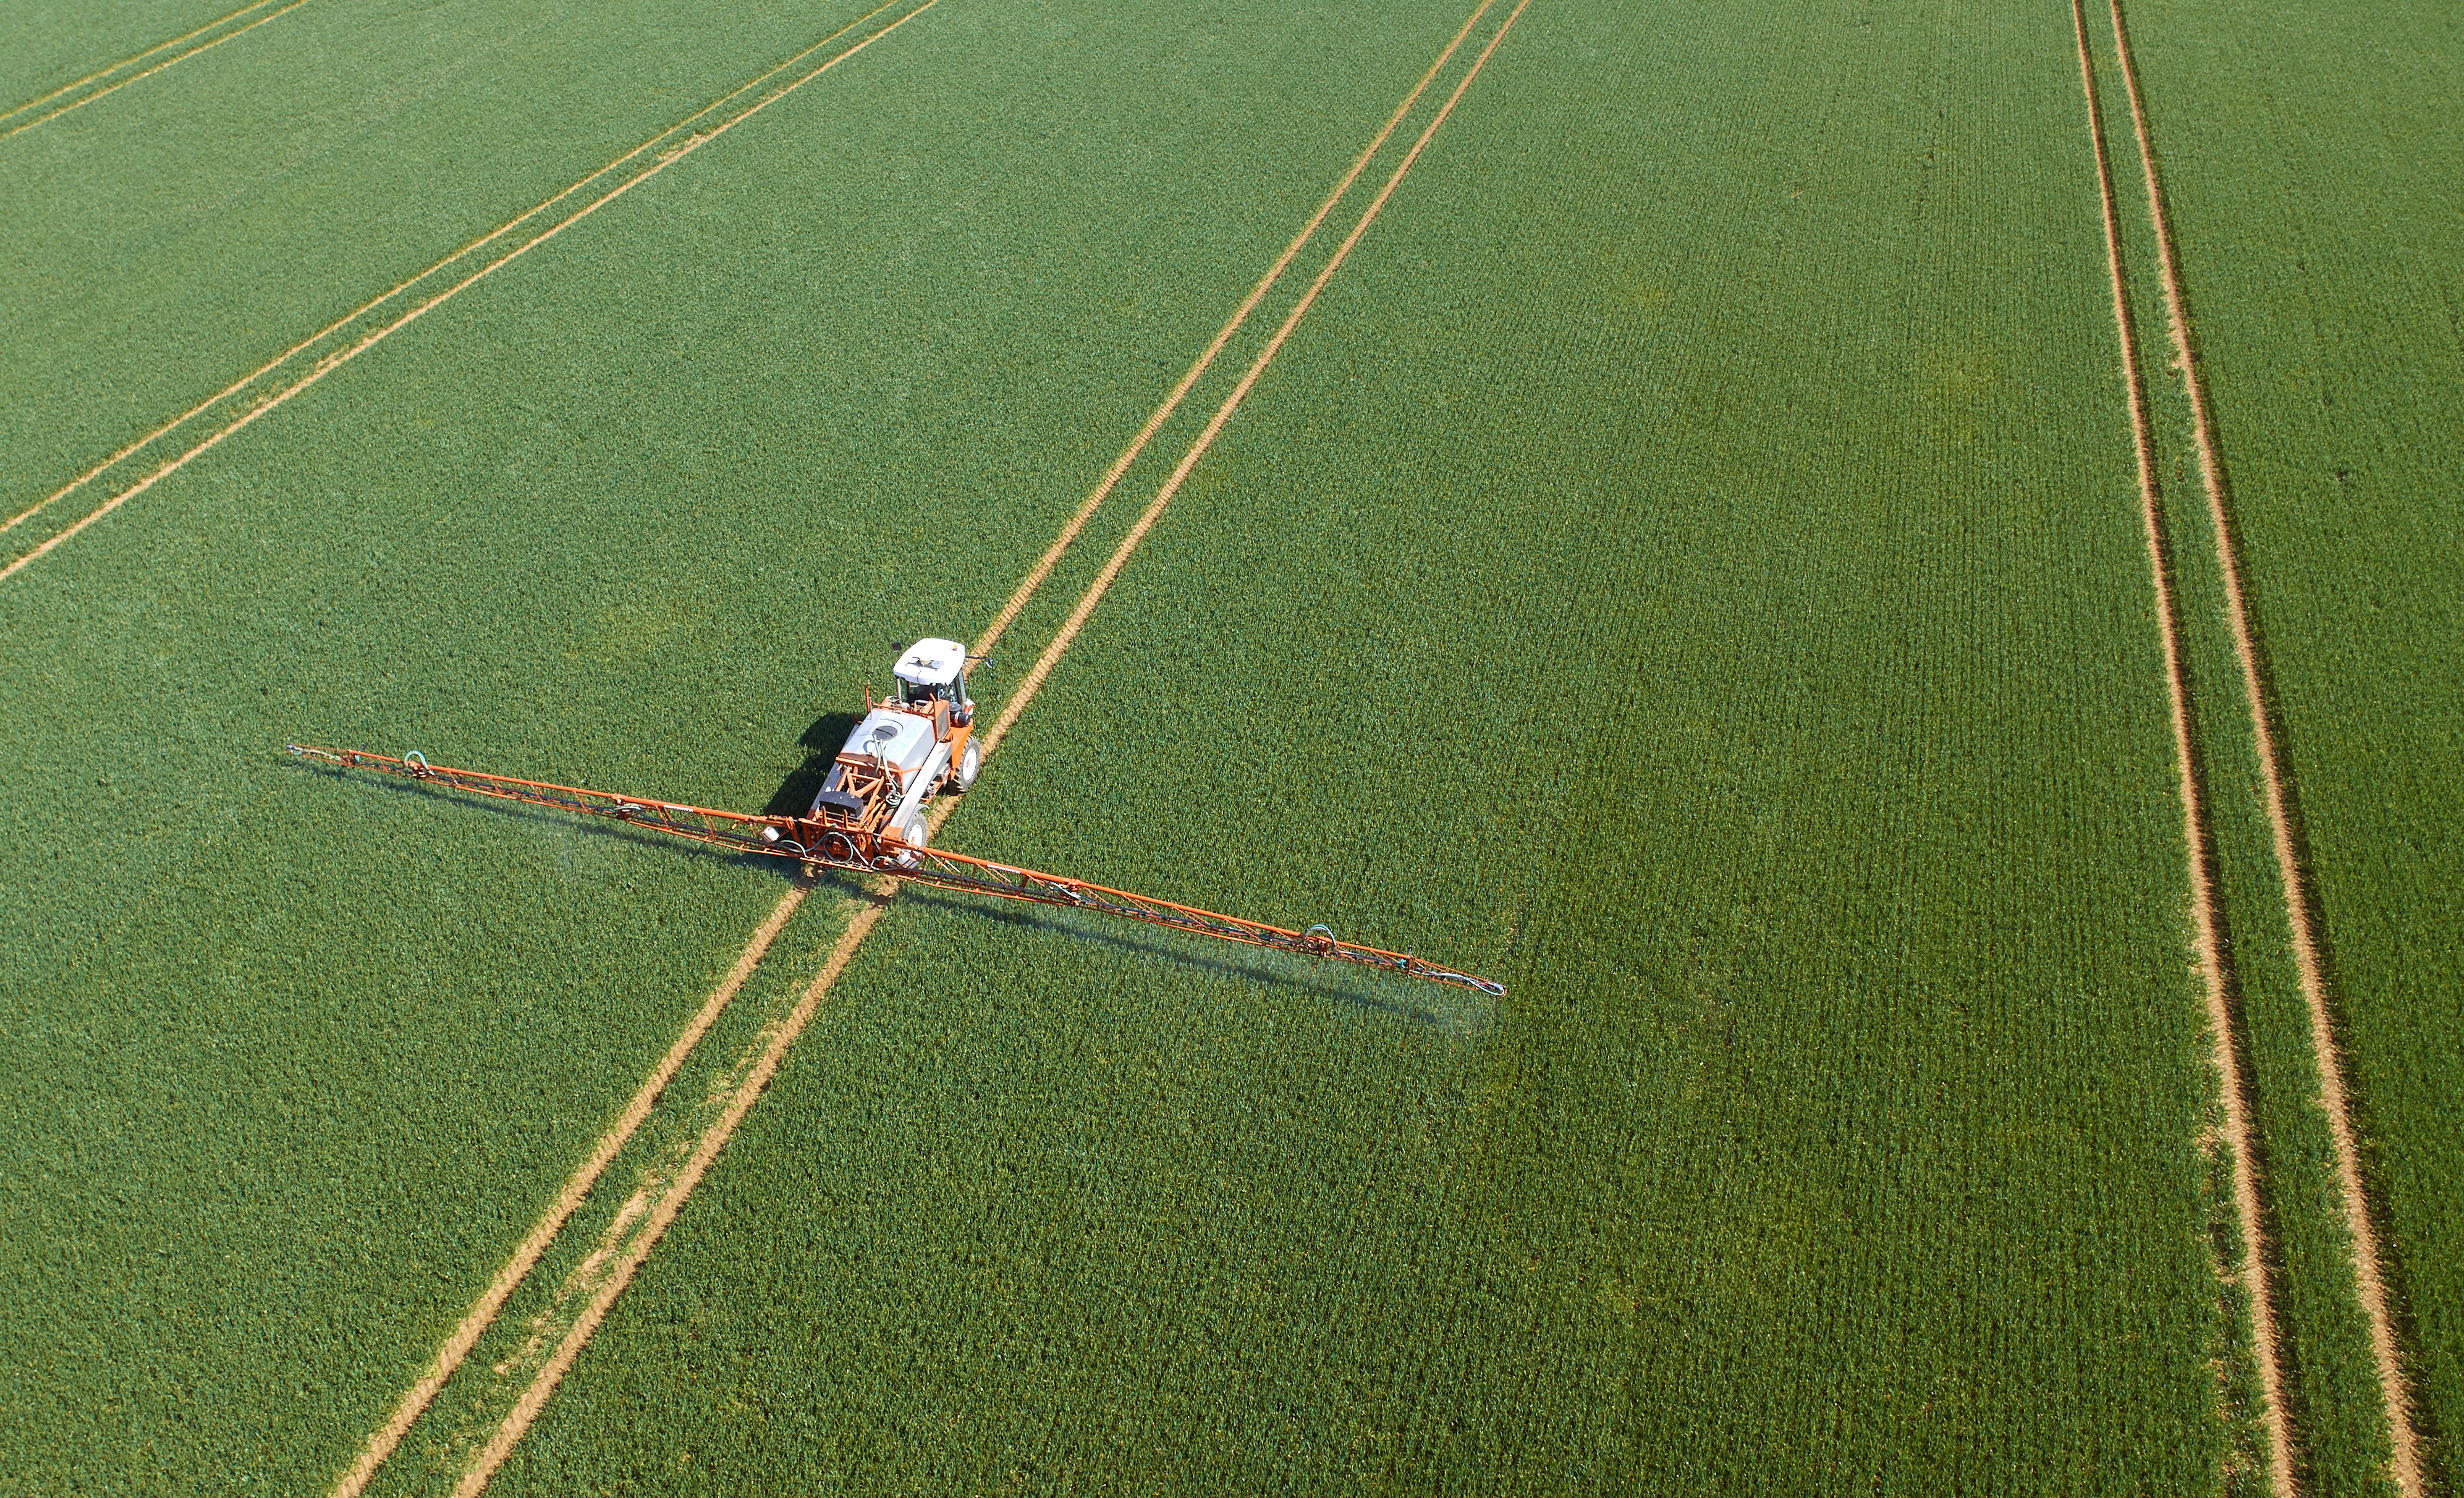 Crop sprayer in field aerial view - Captured by a licensed UAV operator with a permission for aerial work.